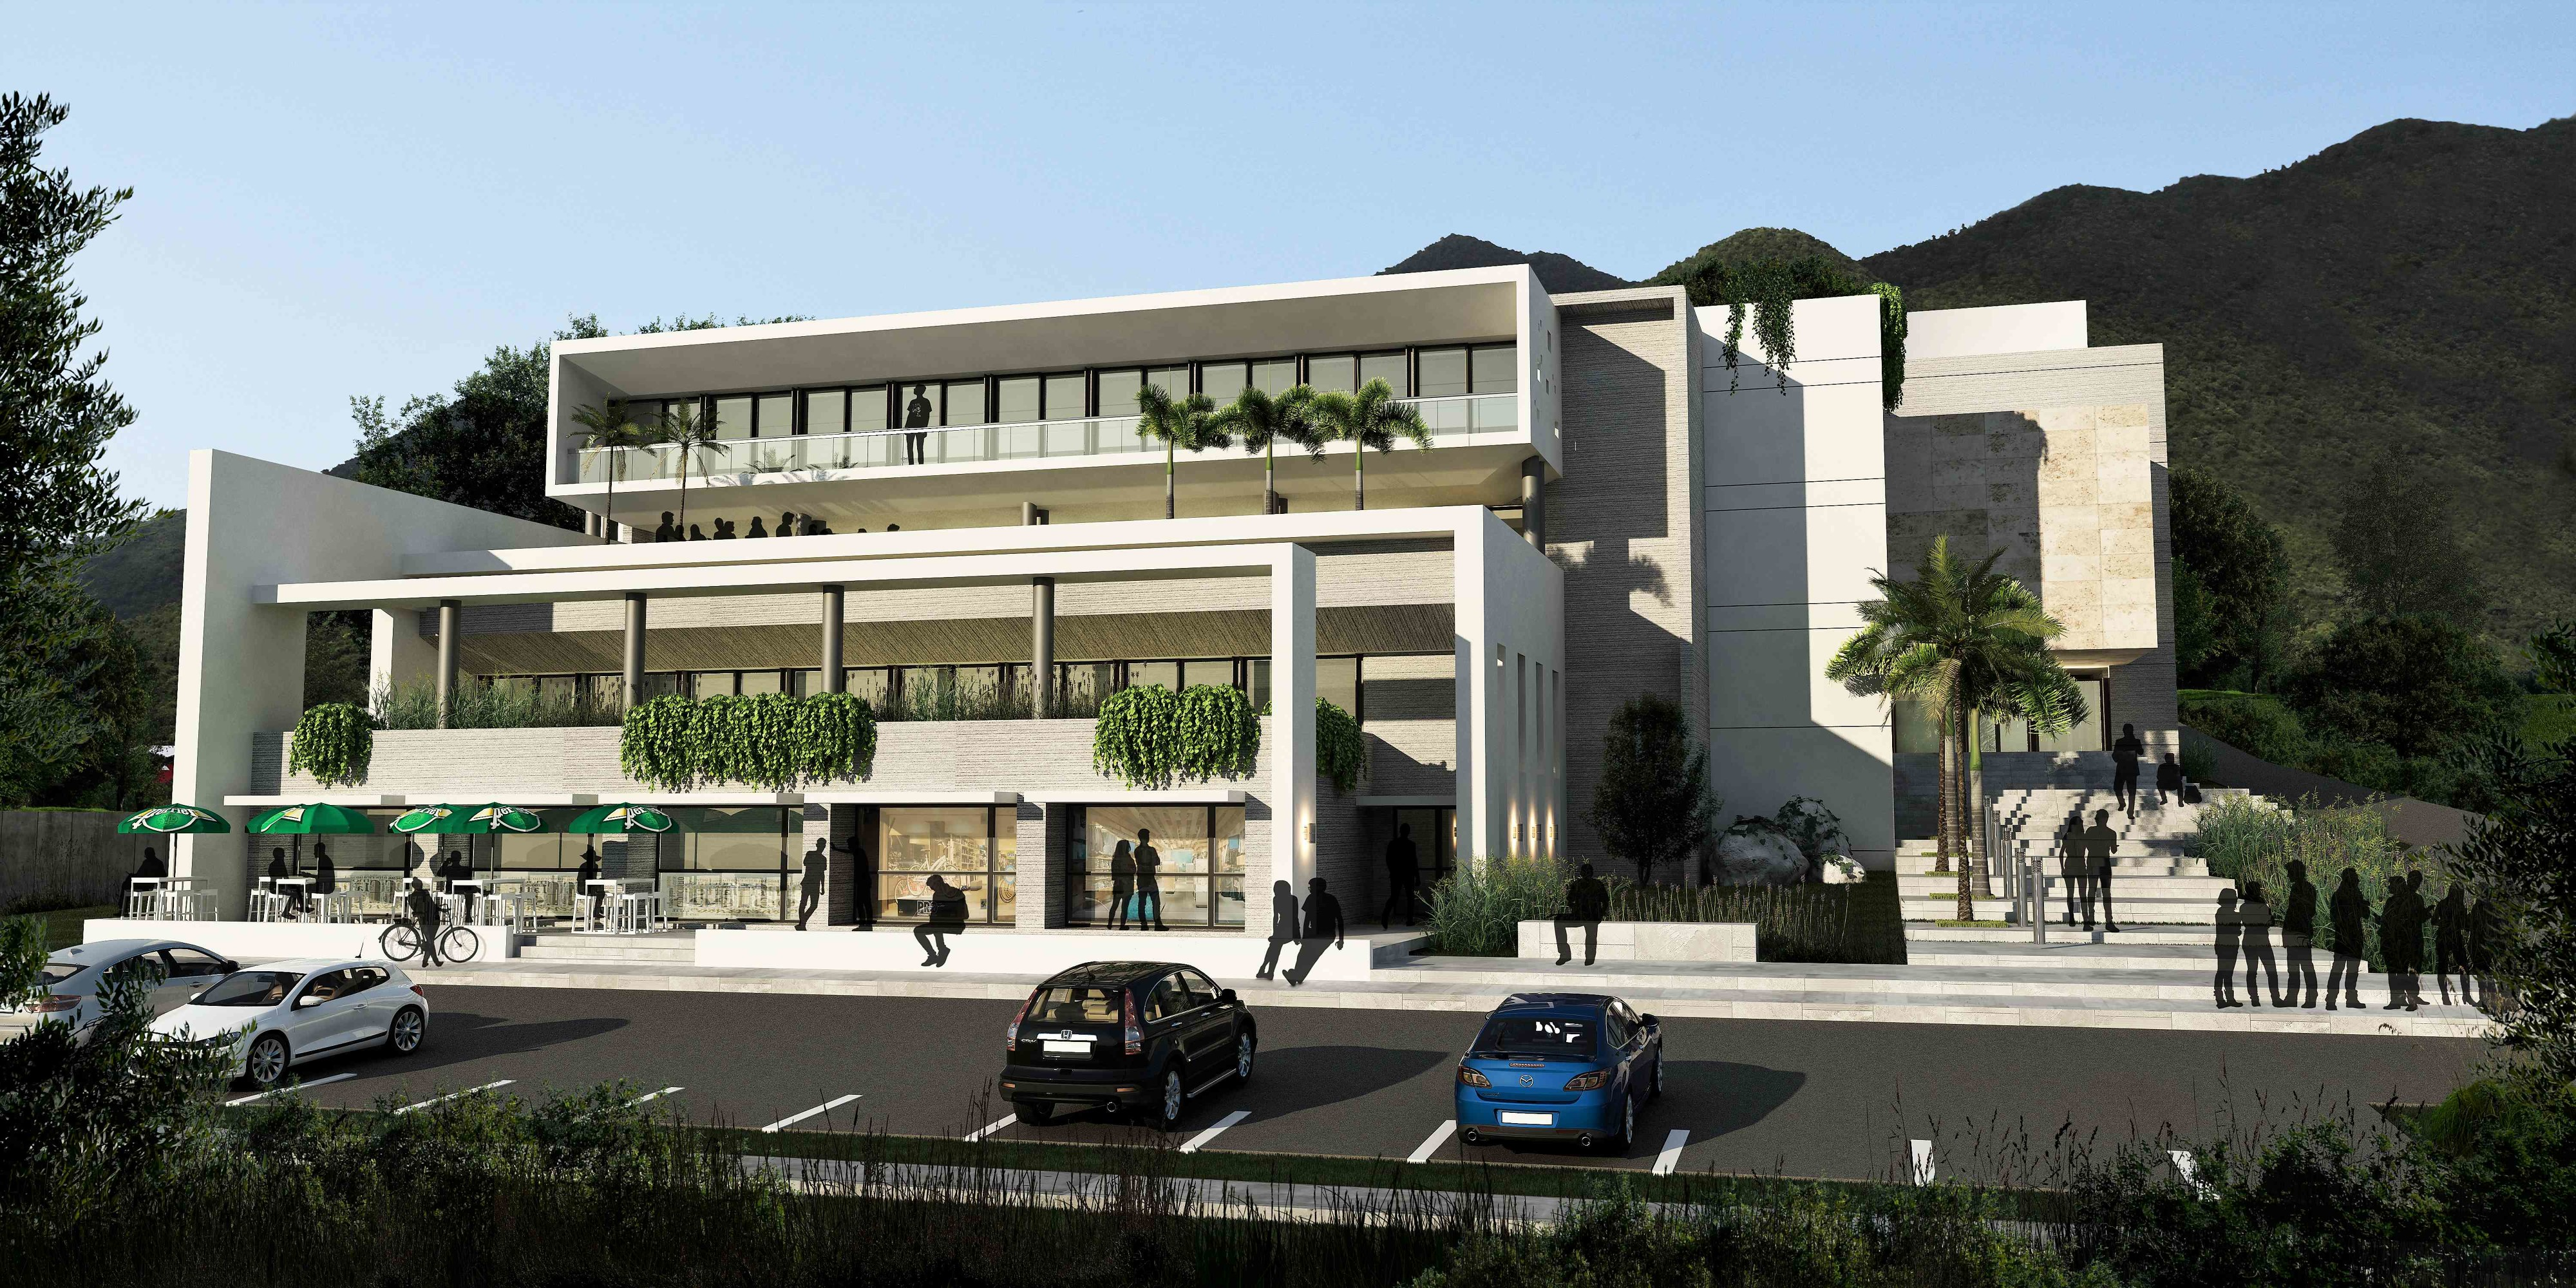 New Commercial and office building in Cole Bay - 54ca8-1.2.jpg